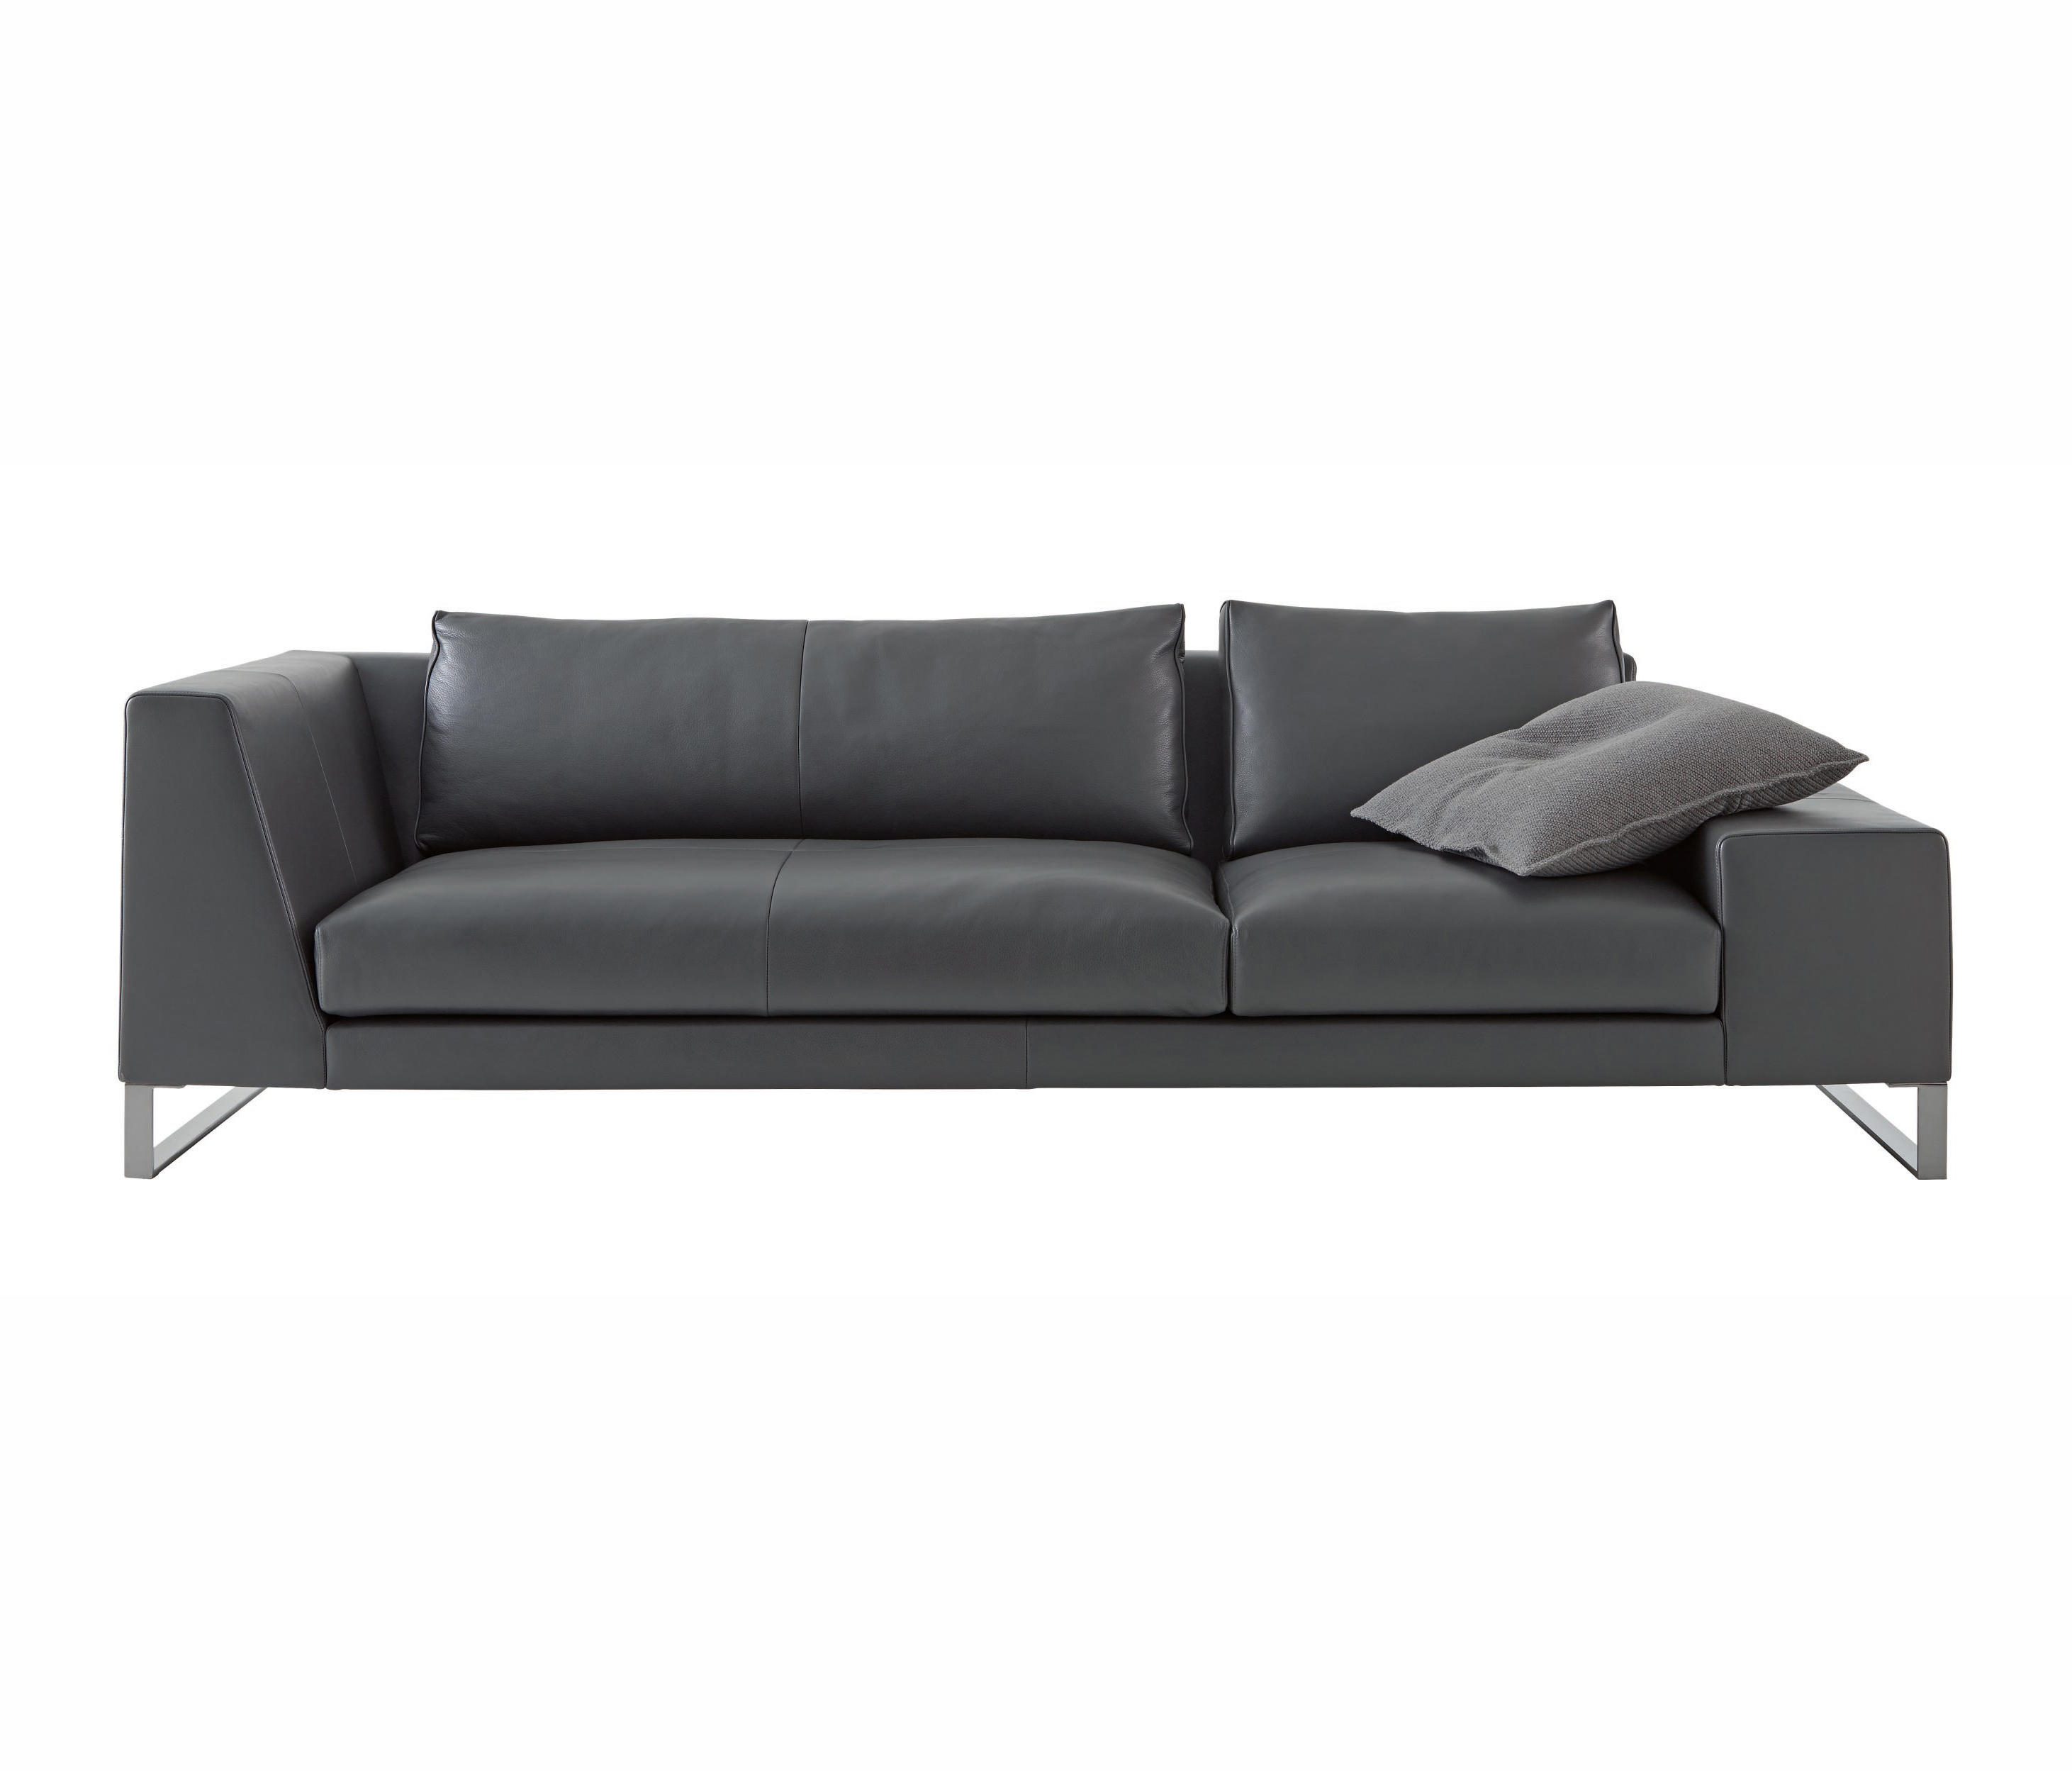 Exclusif 2 Large Asymmetrical Settee Left Complete Item Architonic